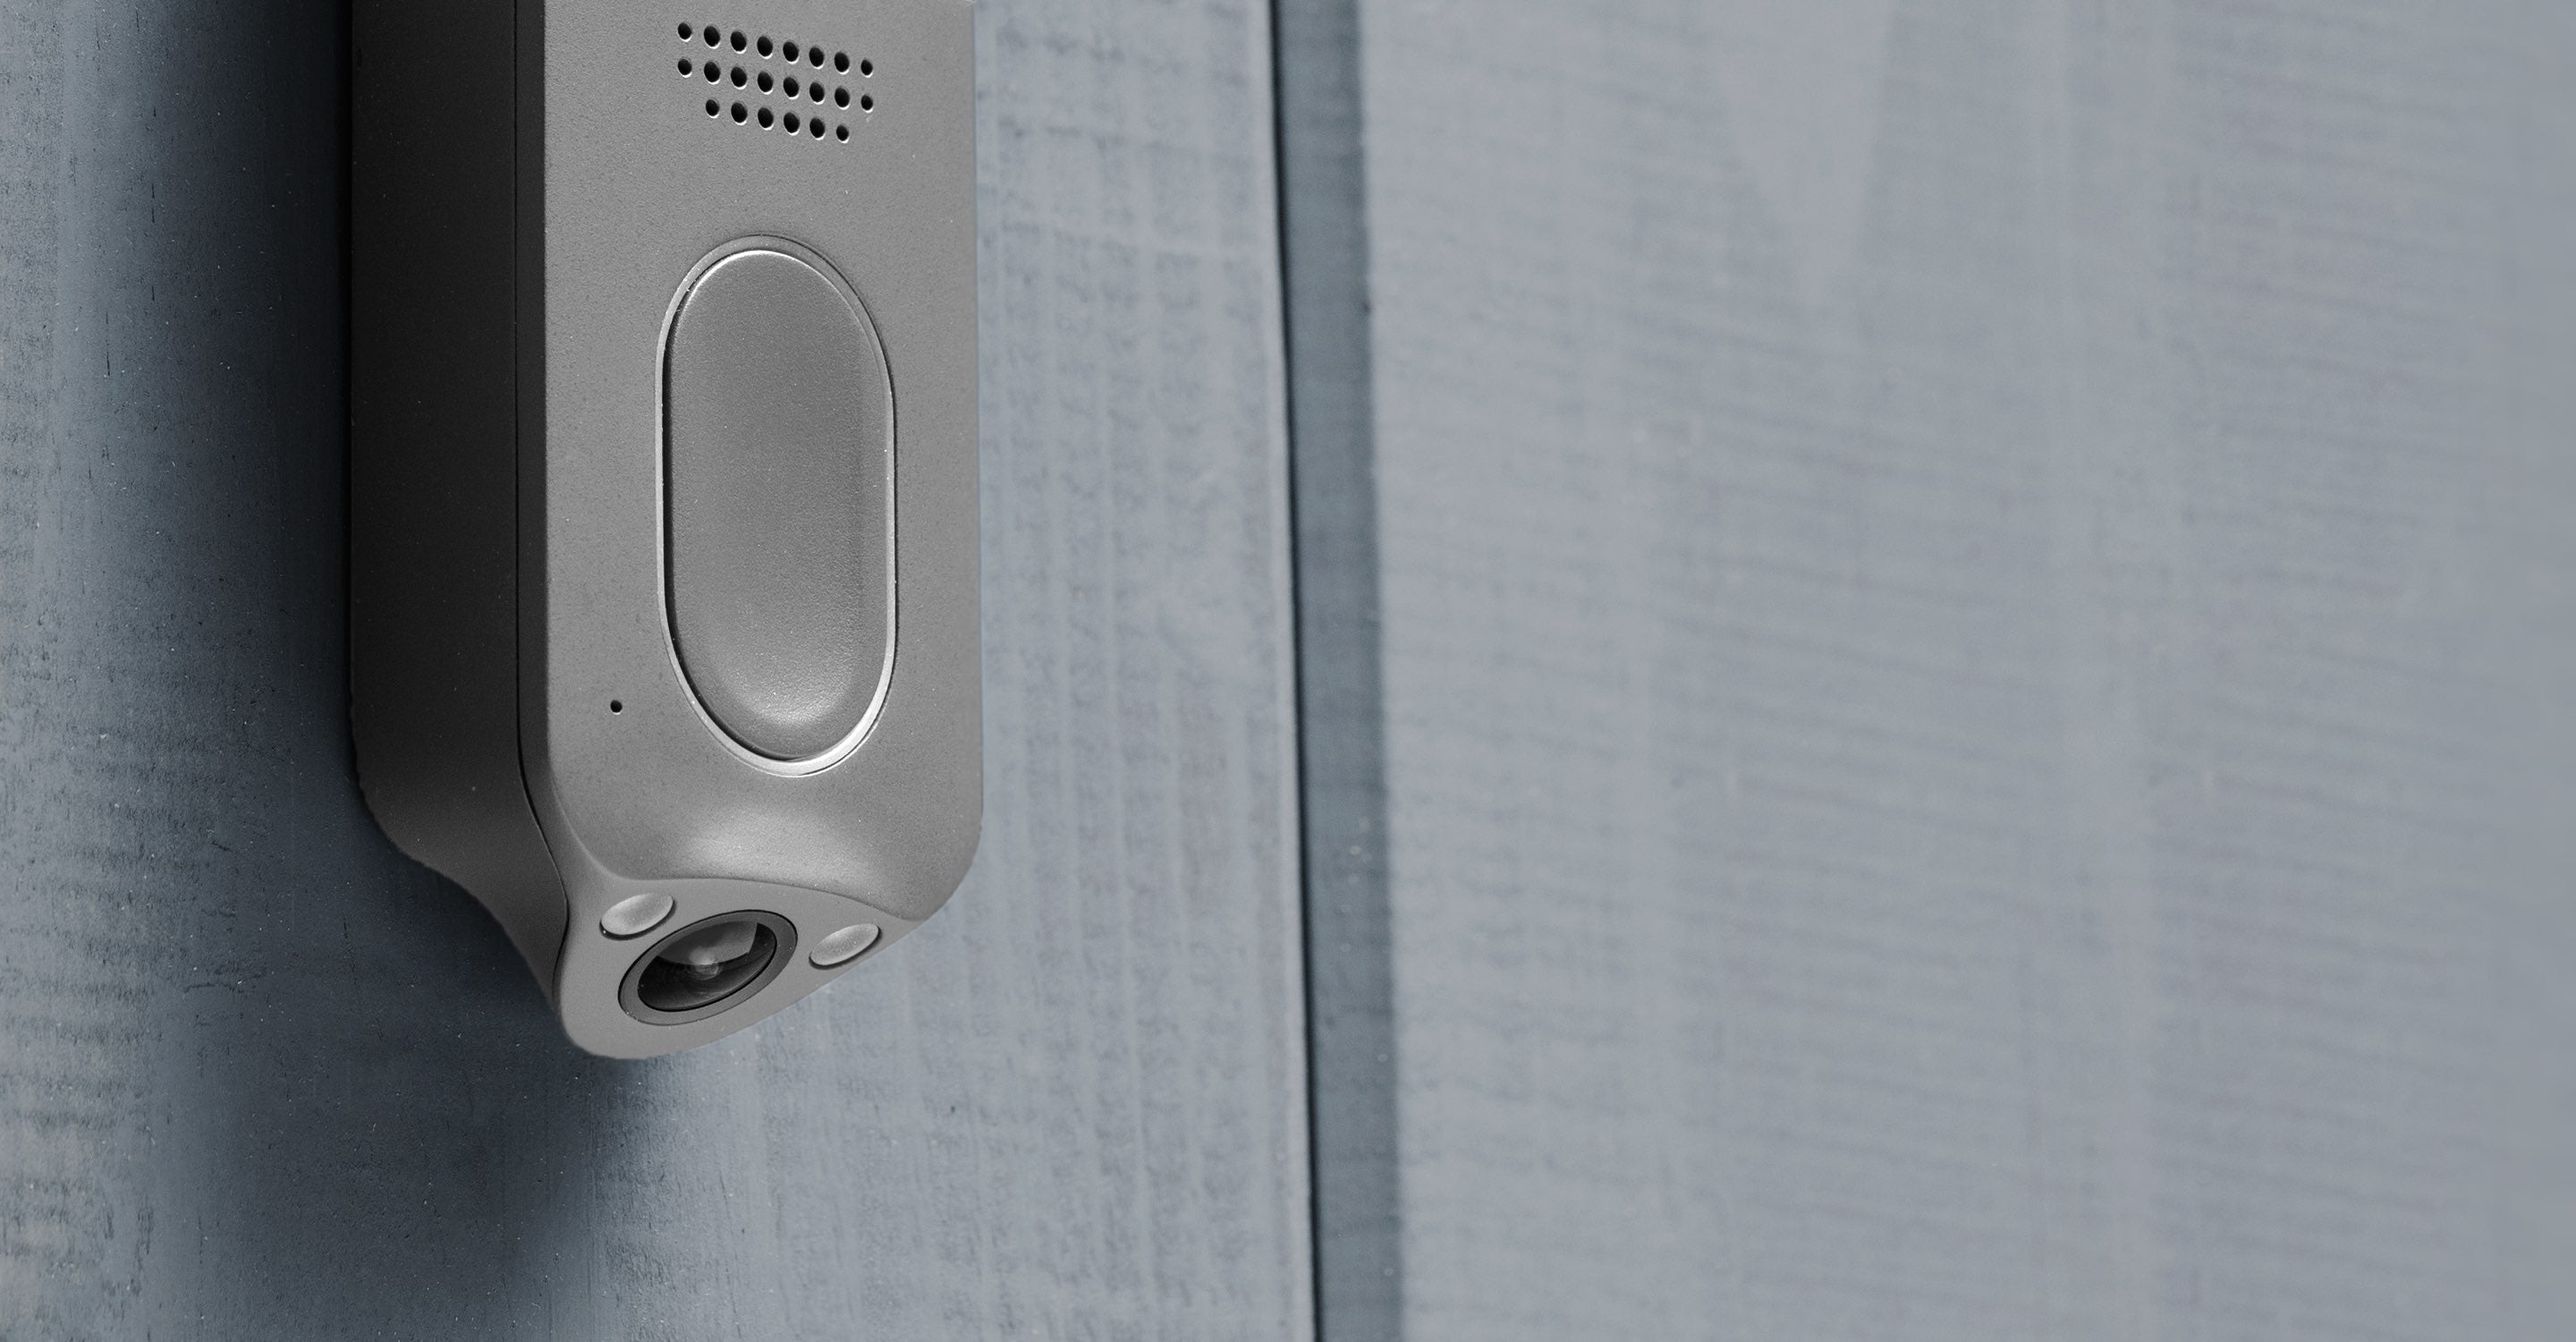 Maximus Answer DualCam Video Doorbell Bottom Camera Eliminates Blindspots